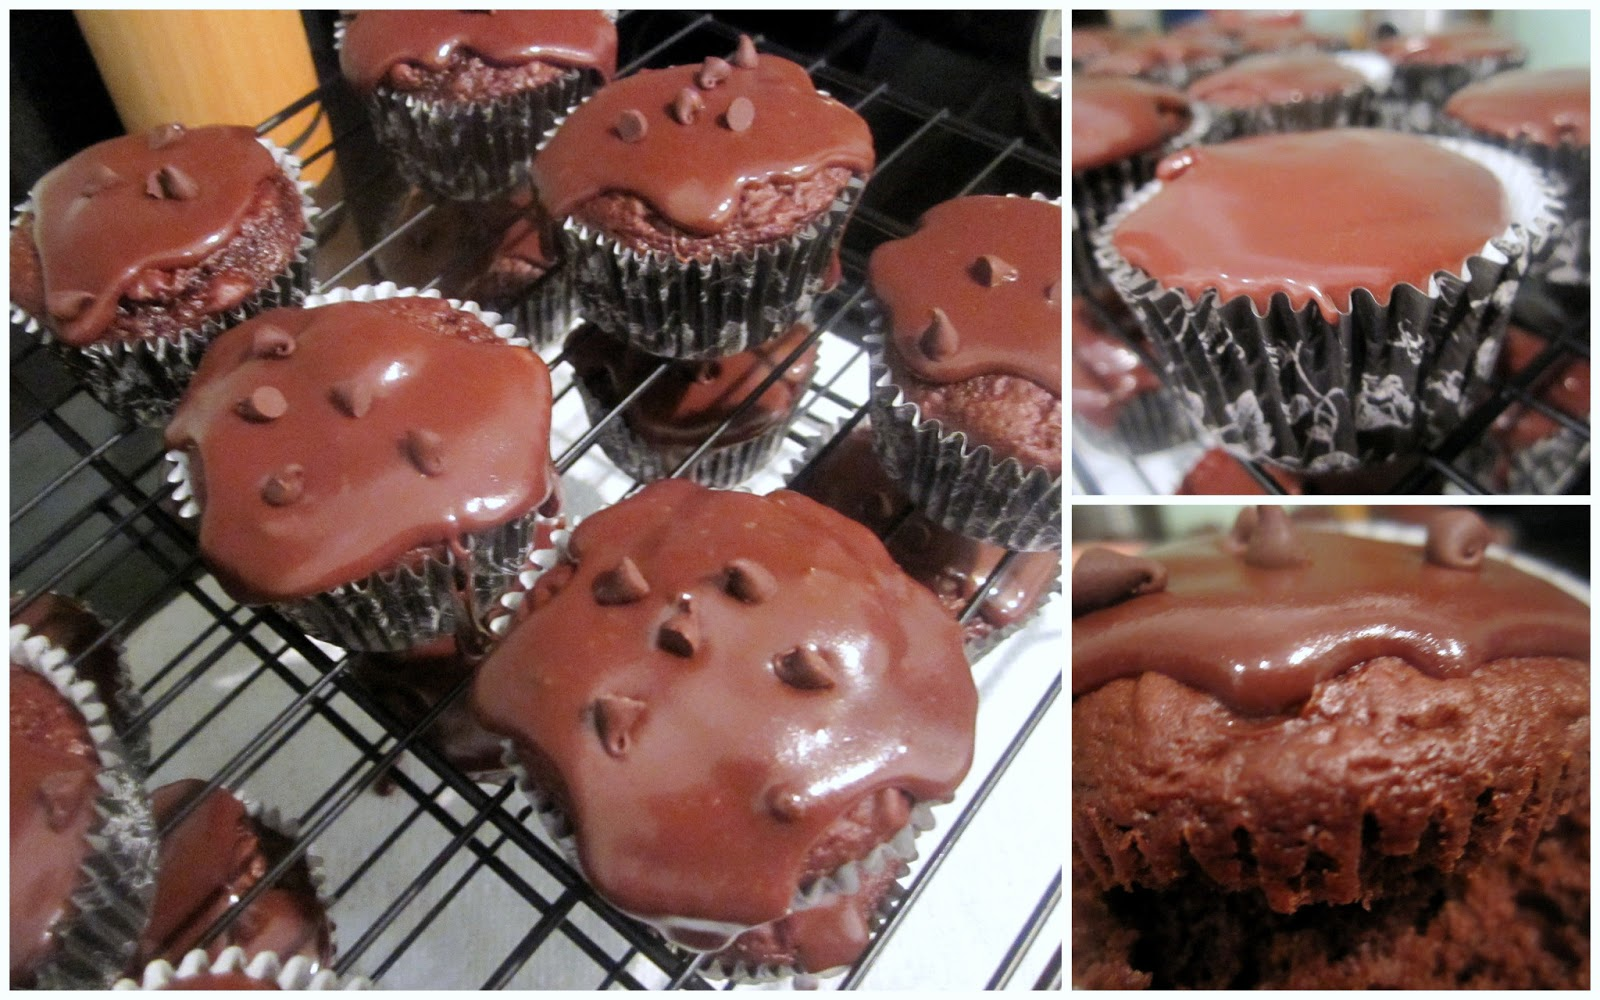 Sophie in the Kitchen: Double Chocolate Cupcakes